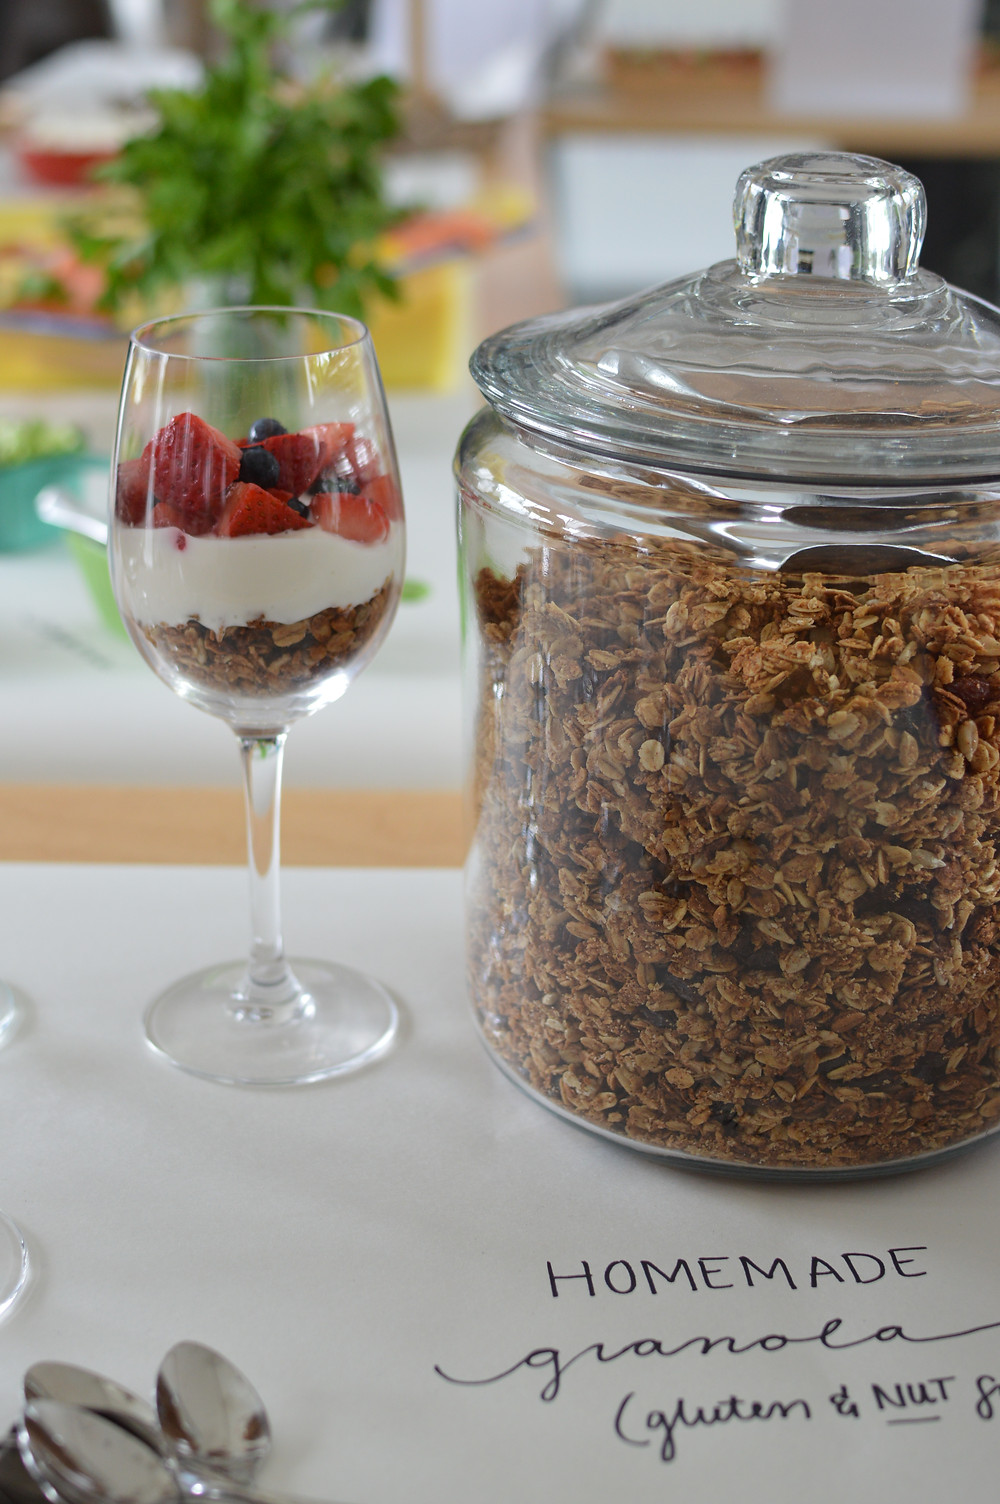 Homemade Crunchy Granola with Walnuts by Stacey Antine, #RidgewoodMoms